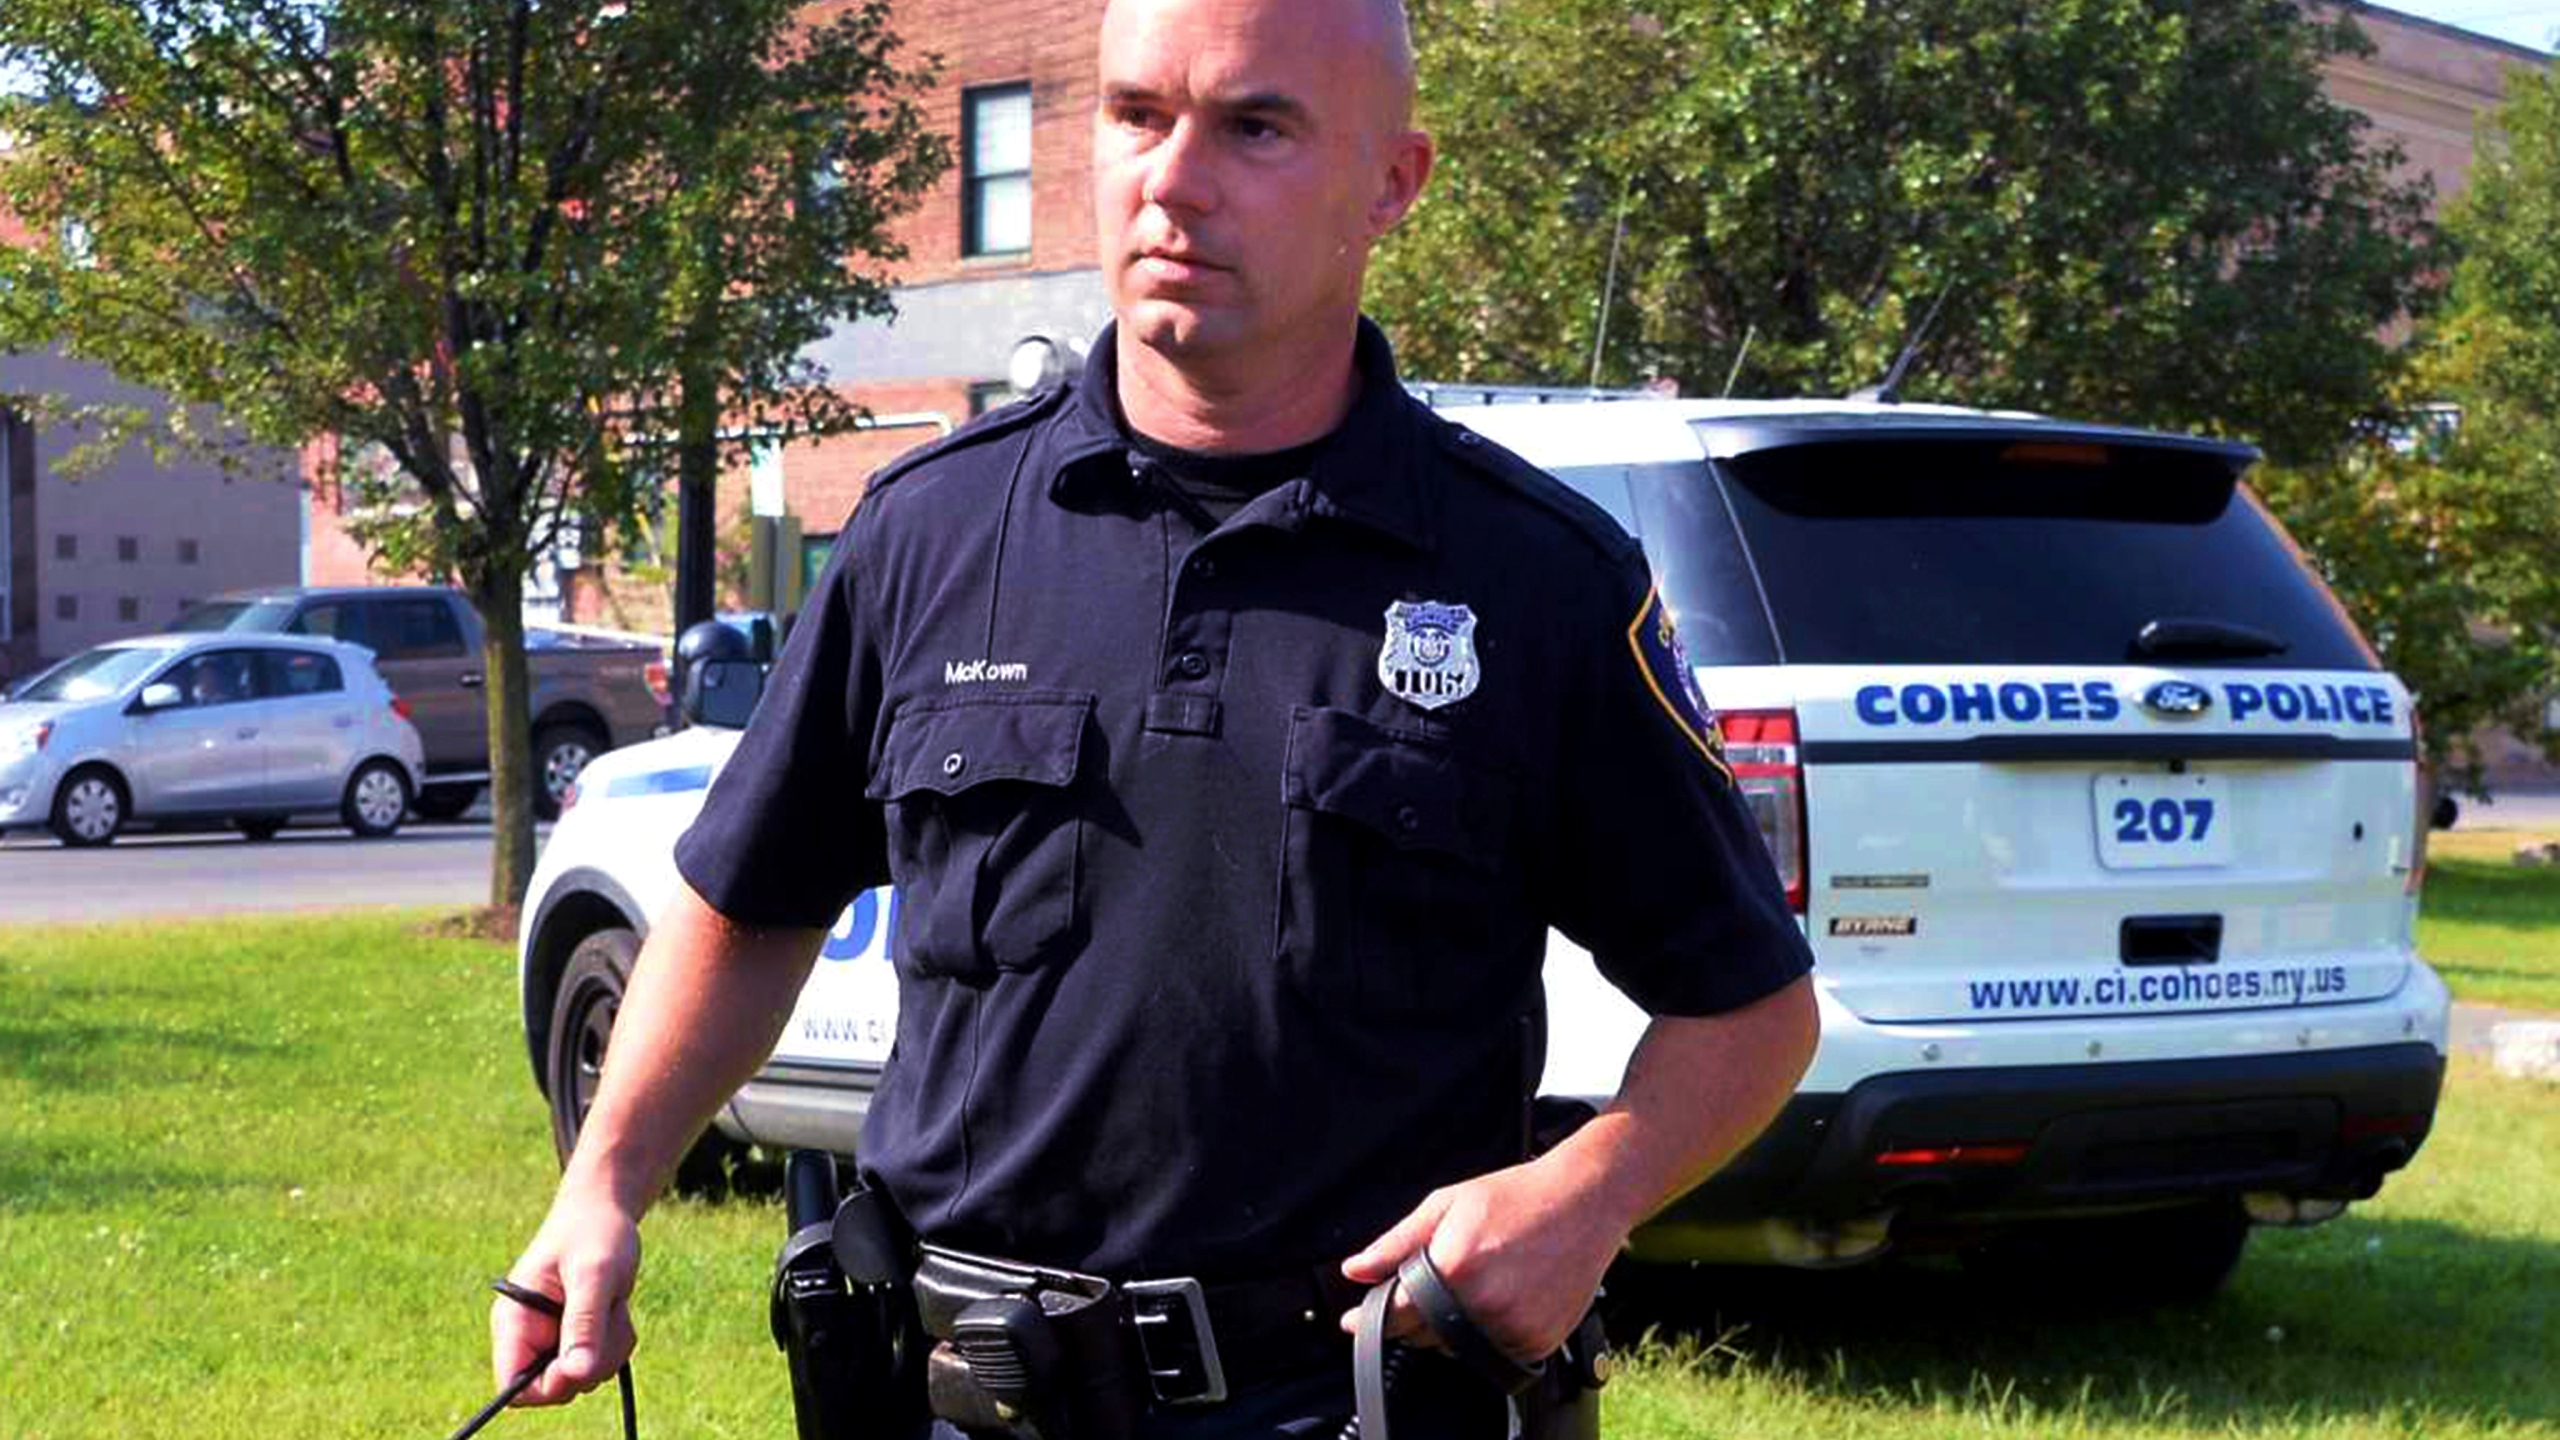 Officer Sean McKown outside the Cohoes Police Station